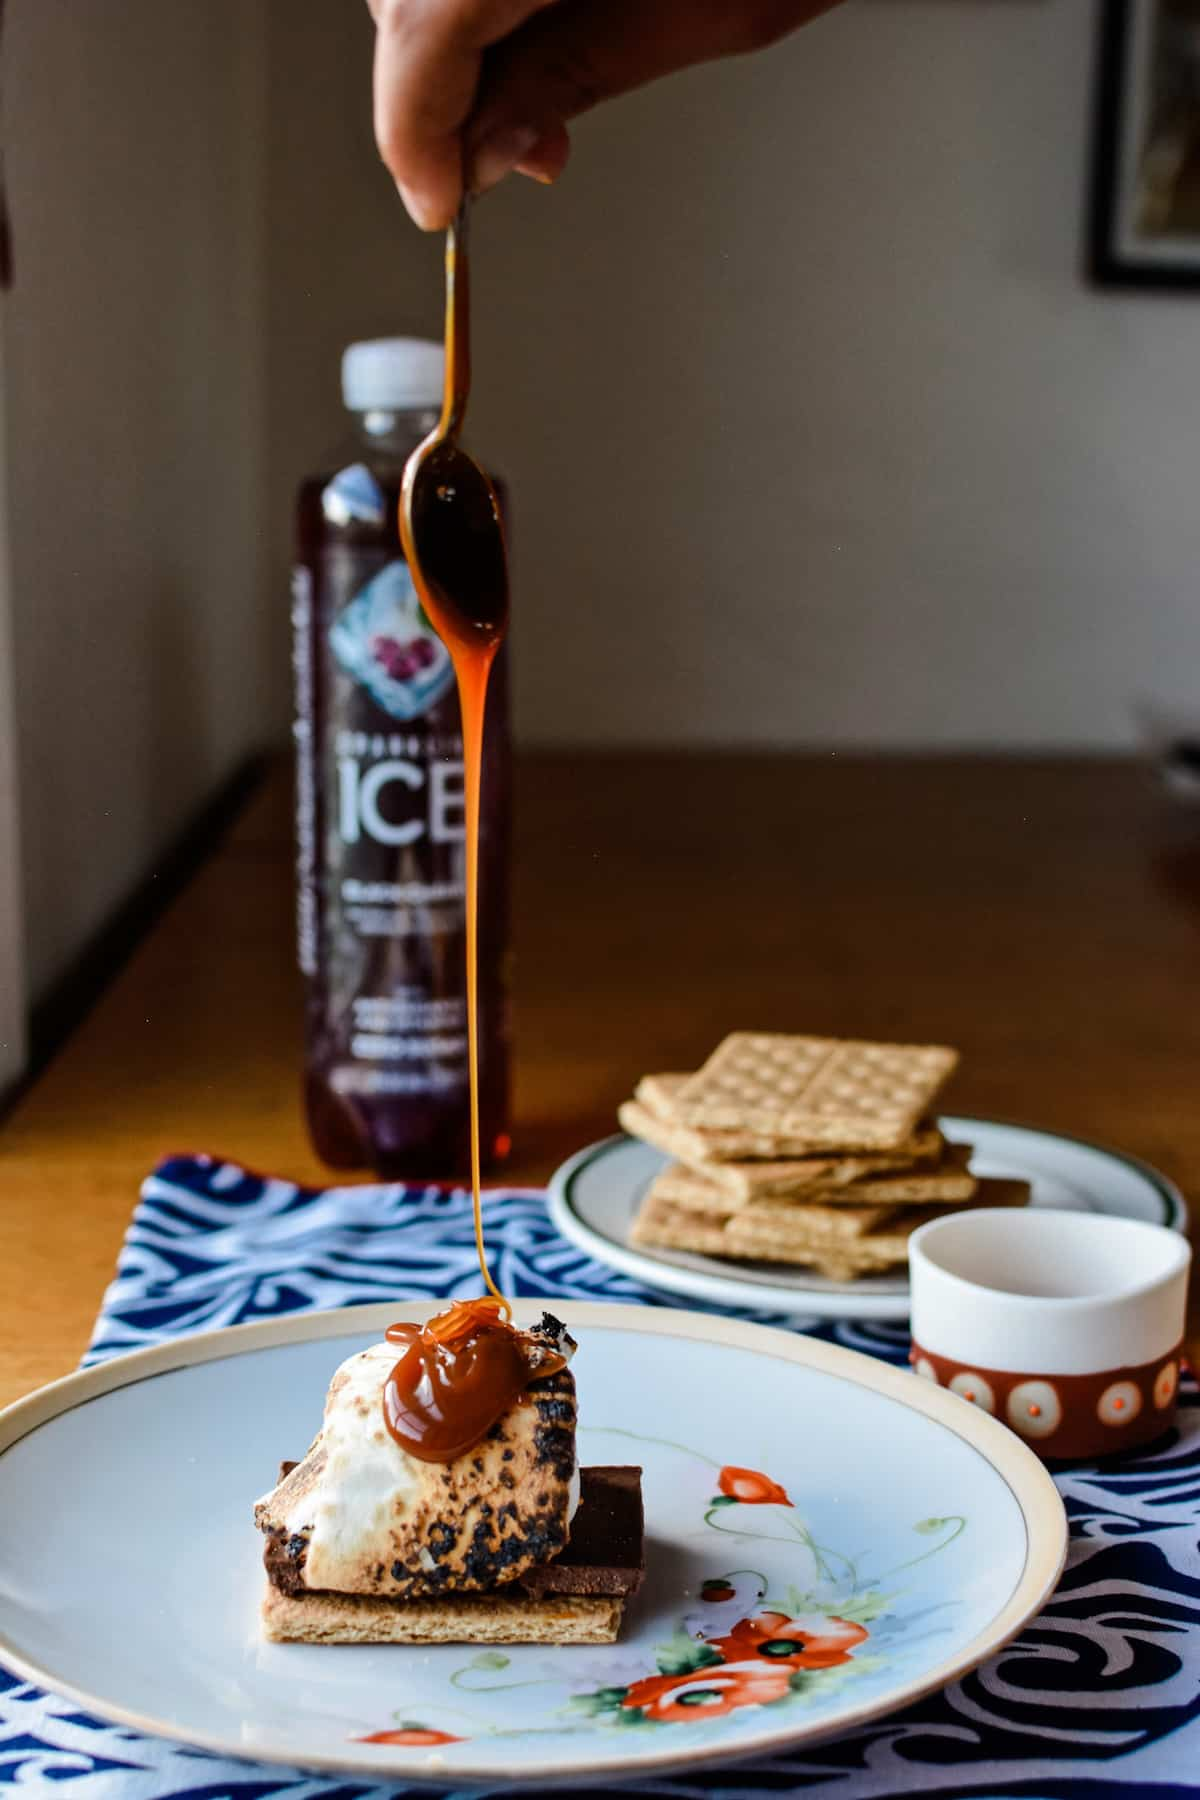 A graham cracker sitting on a white plate with chocolate and toasted marshmallow and a hand dripping caramel sauce on top.